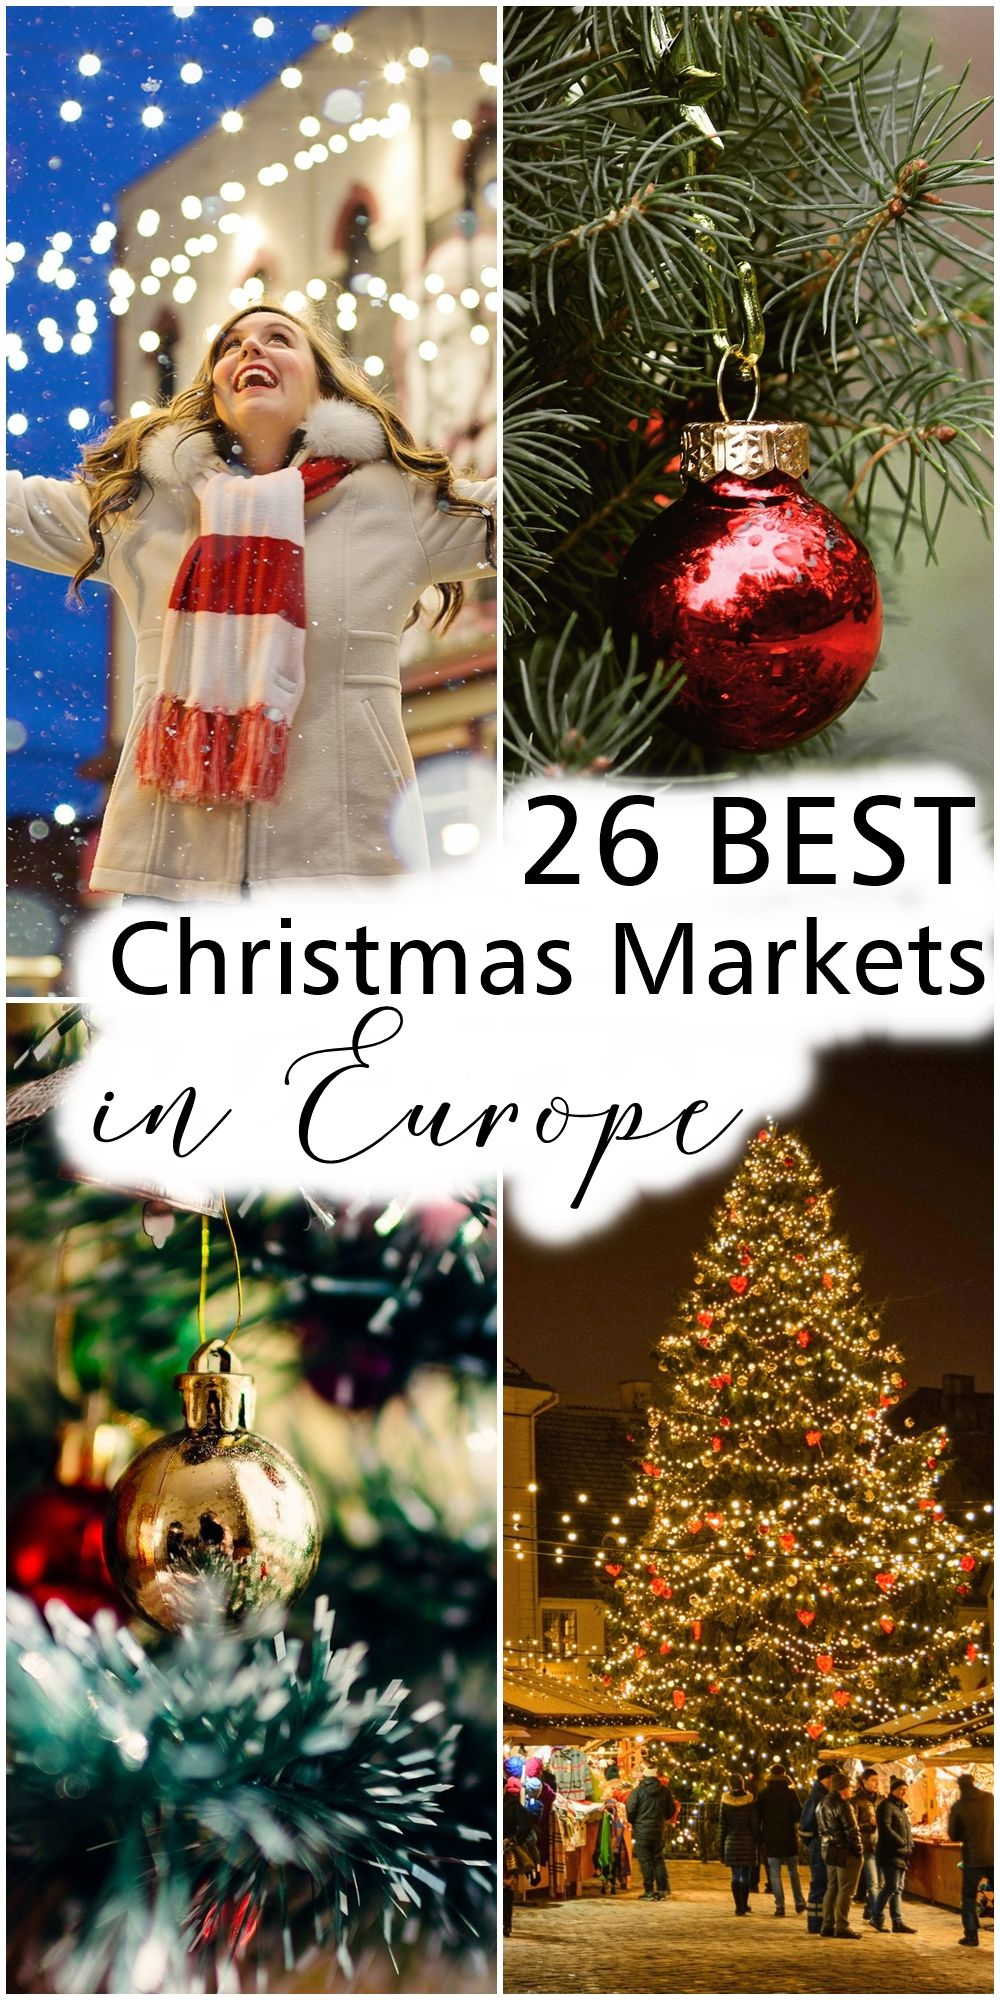 Best Christmas Markets In Europe In 2020 Best Christmas Markets Christmas Markets Europe Christmas Market